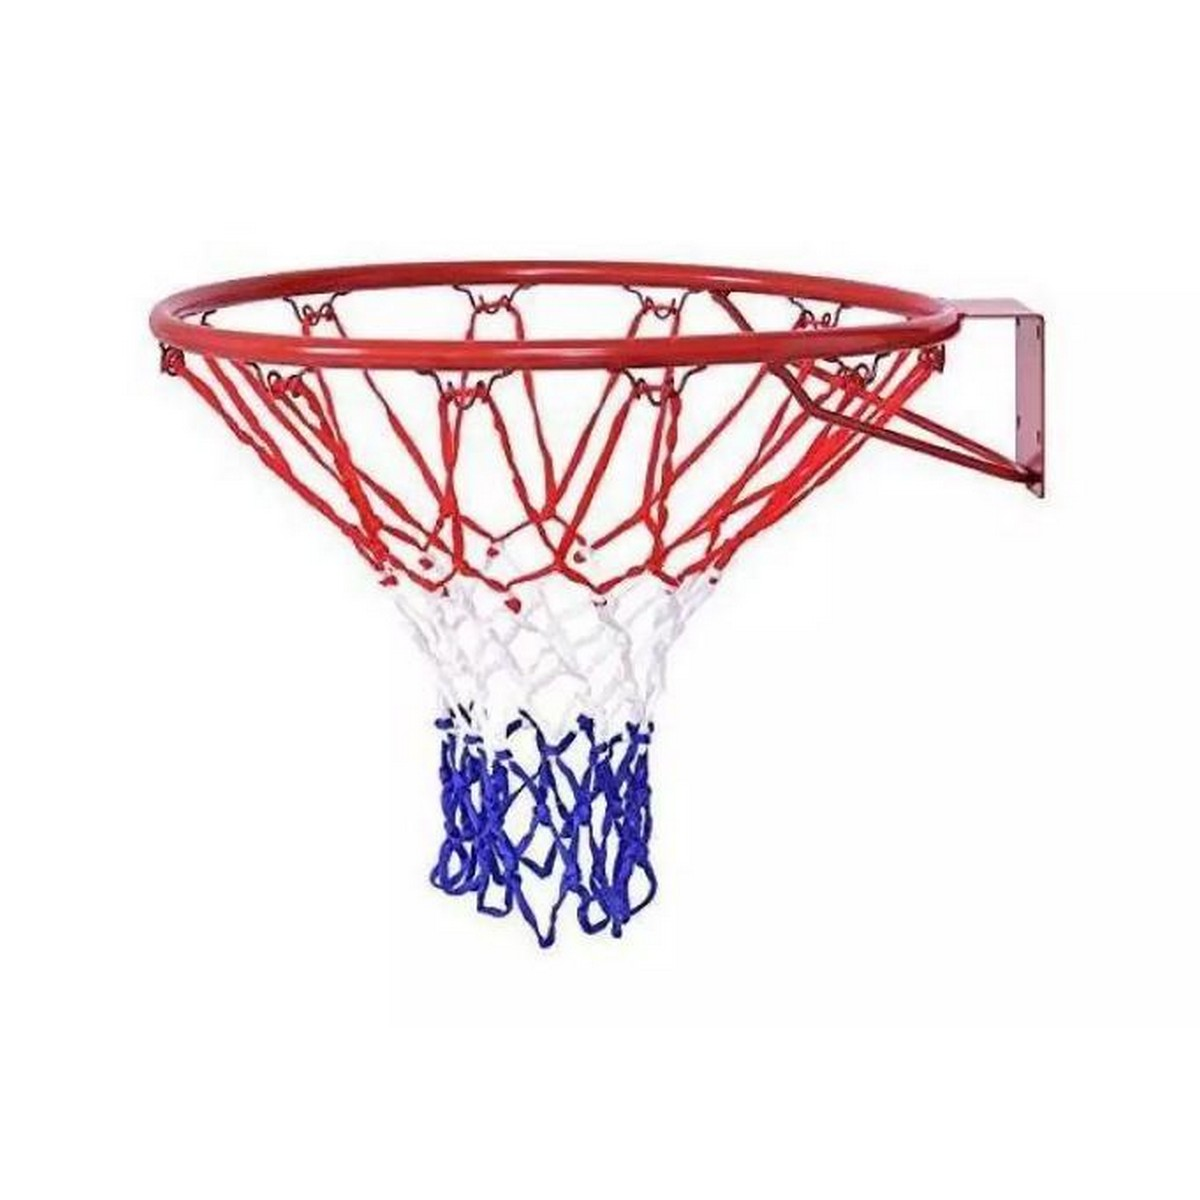 Basket Ball Net with Steel Ring - Multi Color